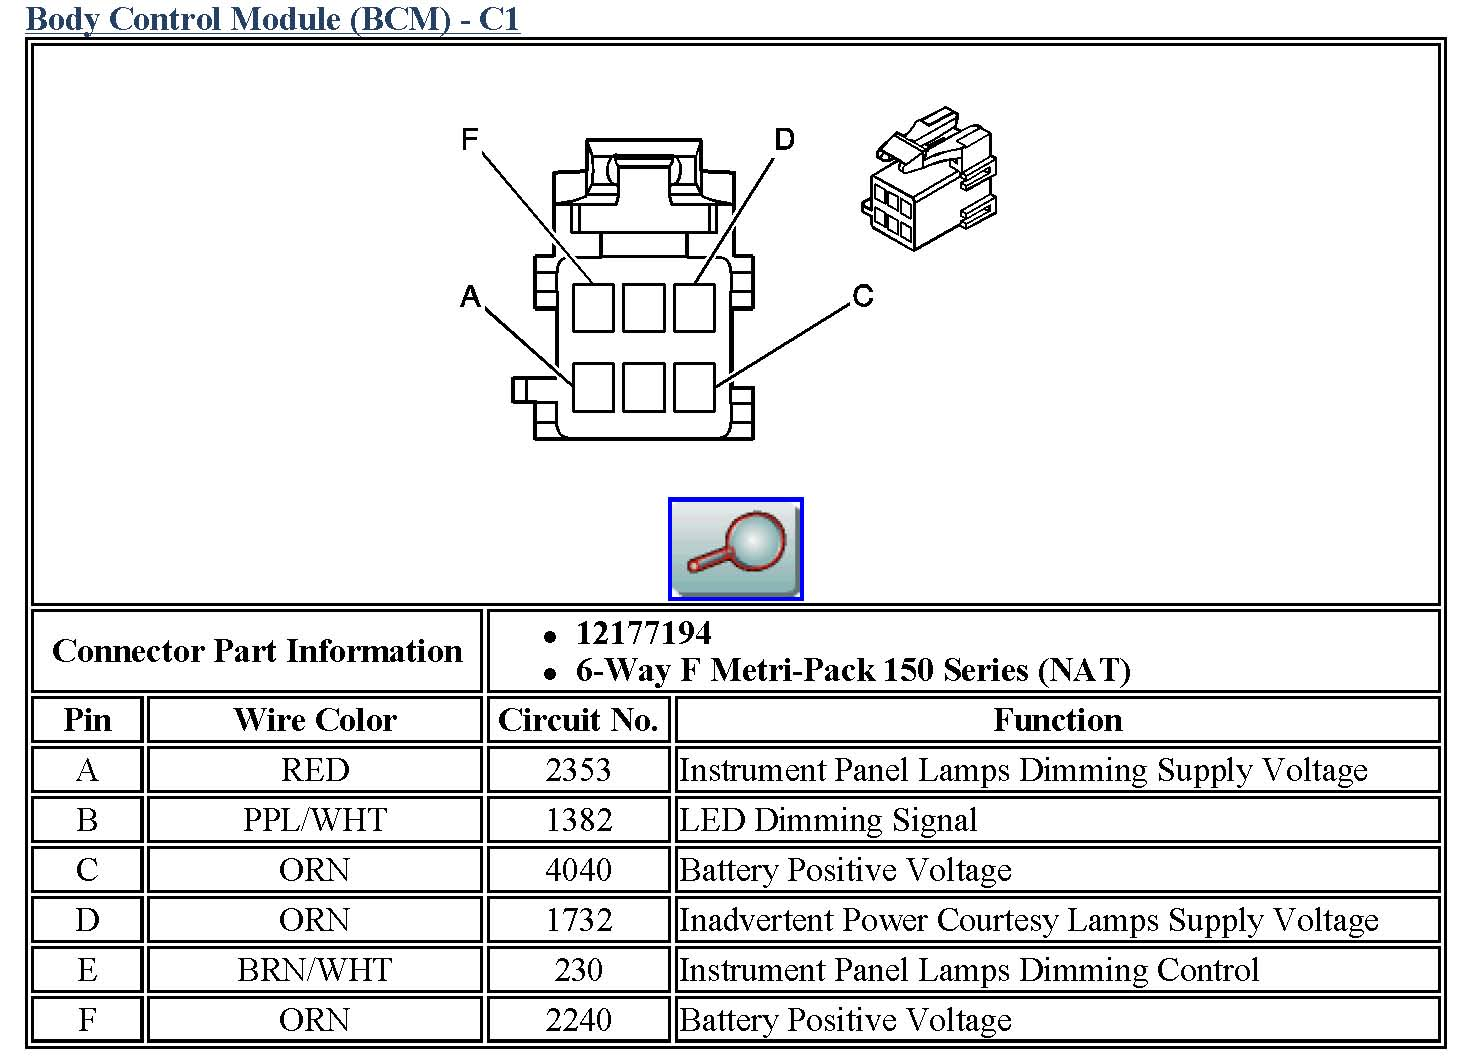 2006 Suburban Fuse Diagram Wiring Library Chevy Express Bcm Basics 101 03 06 Panel Pt Cruiser